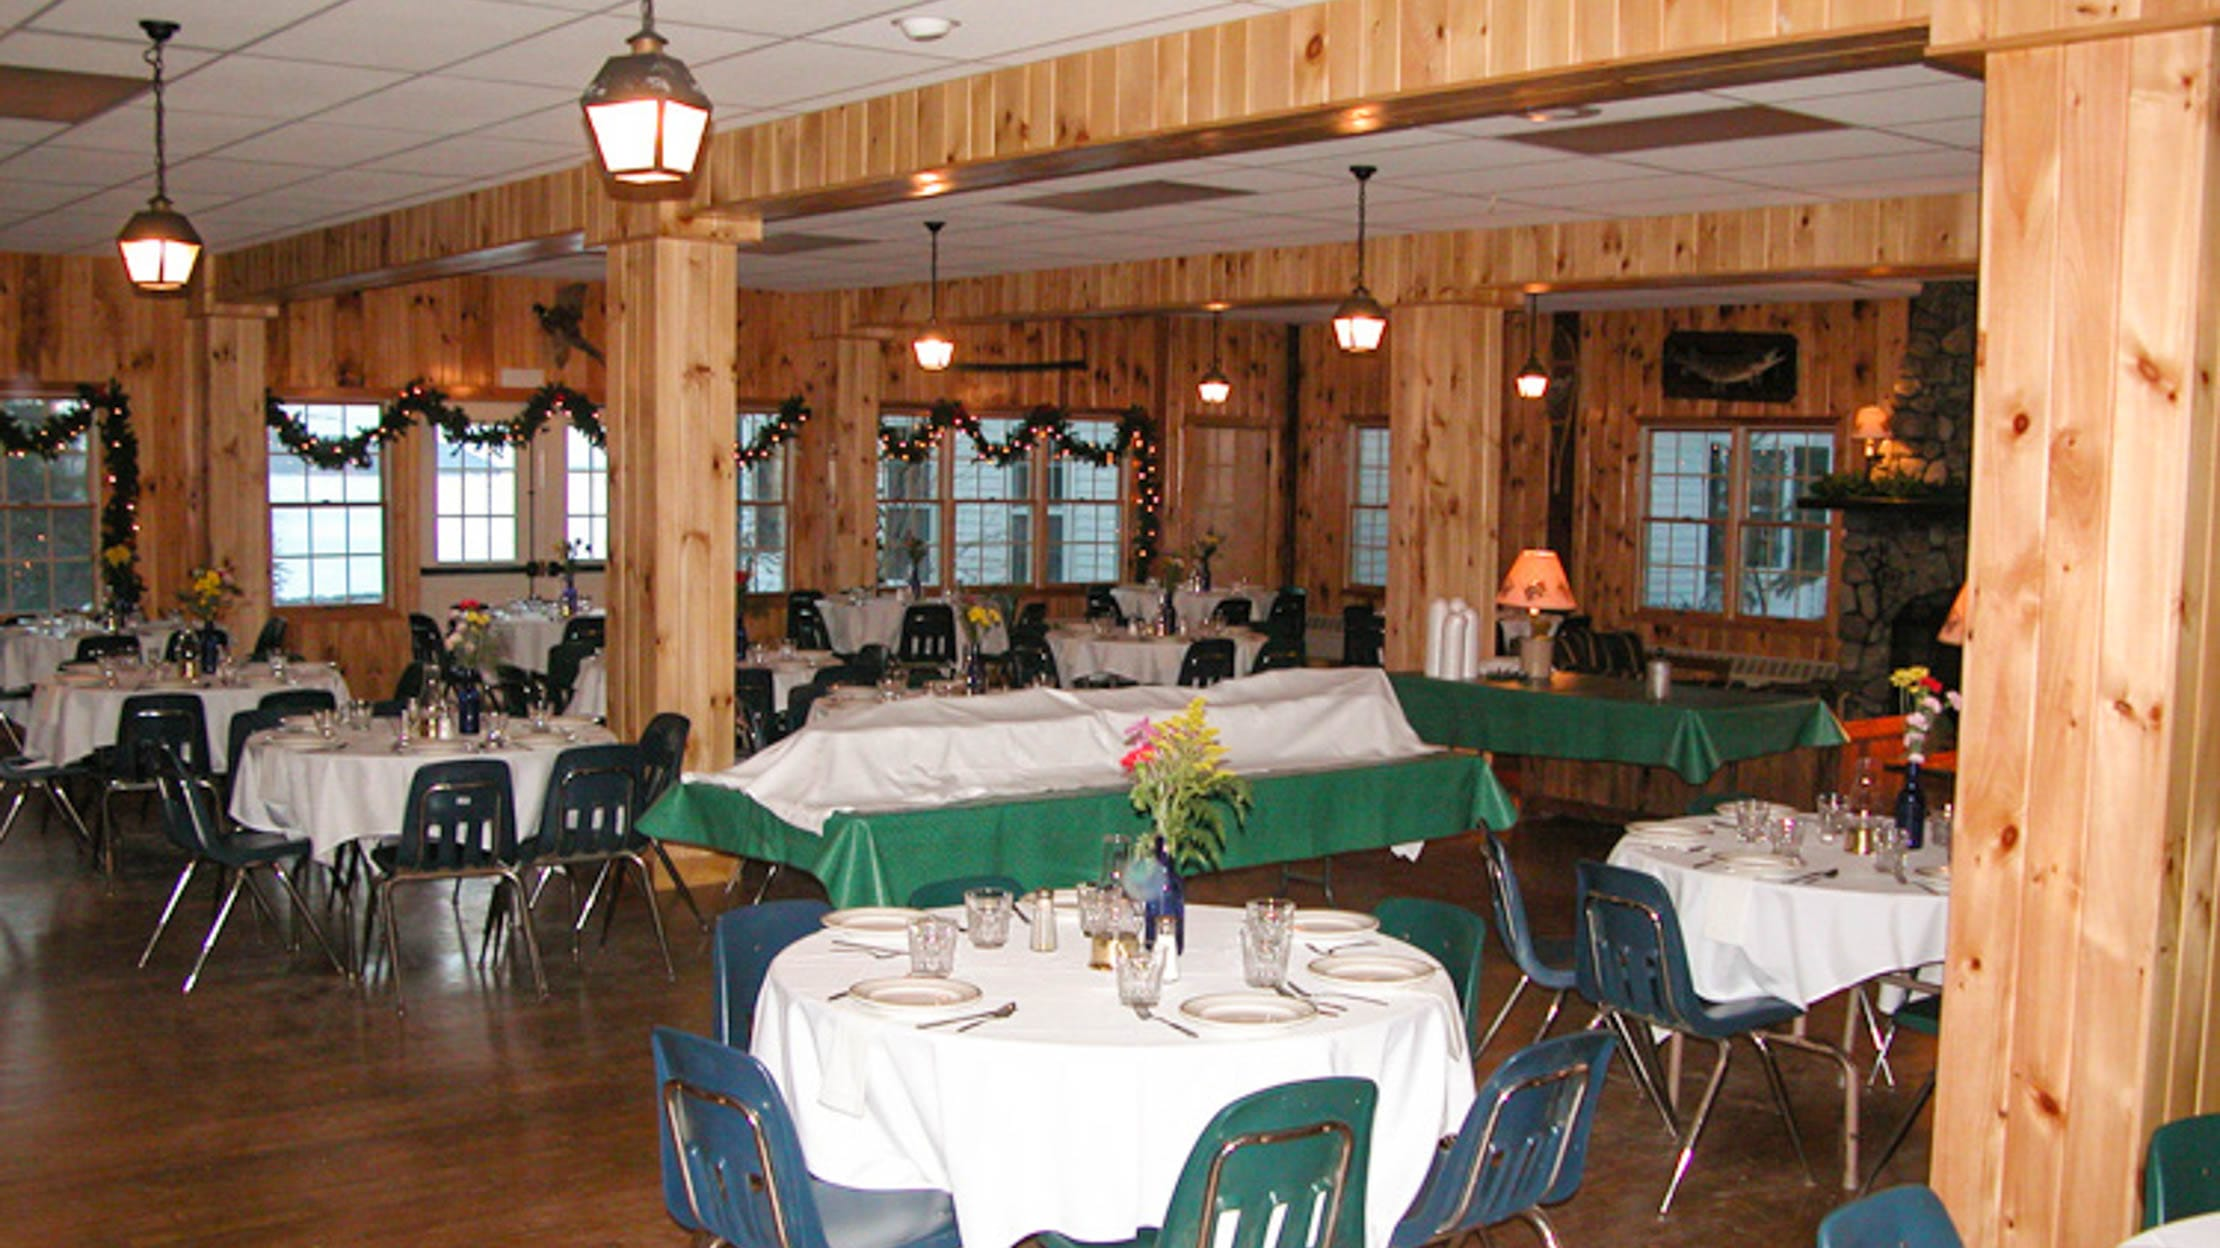 Brookwoods dining hall with table cloths